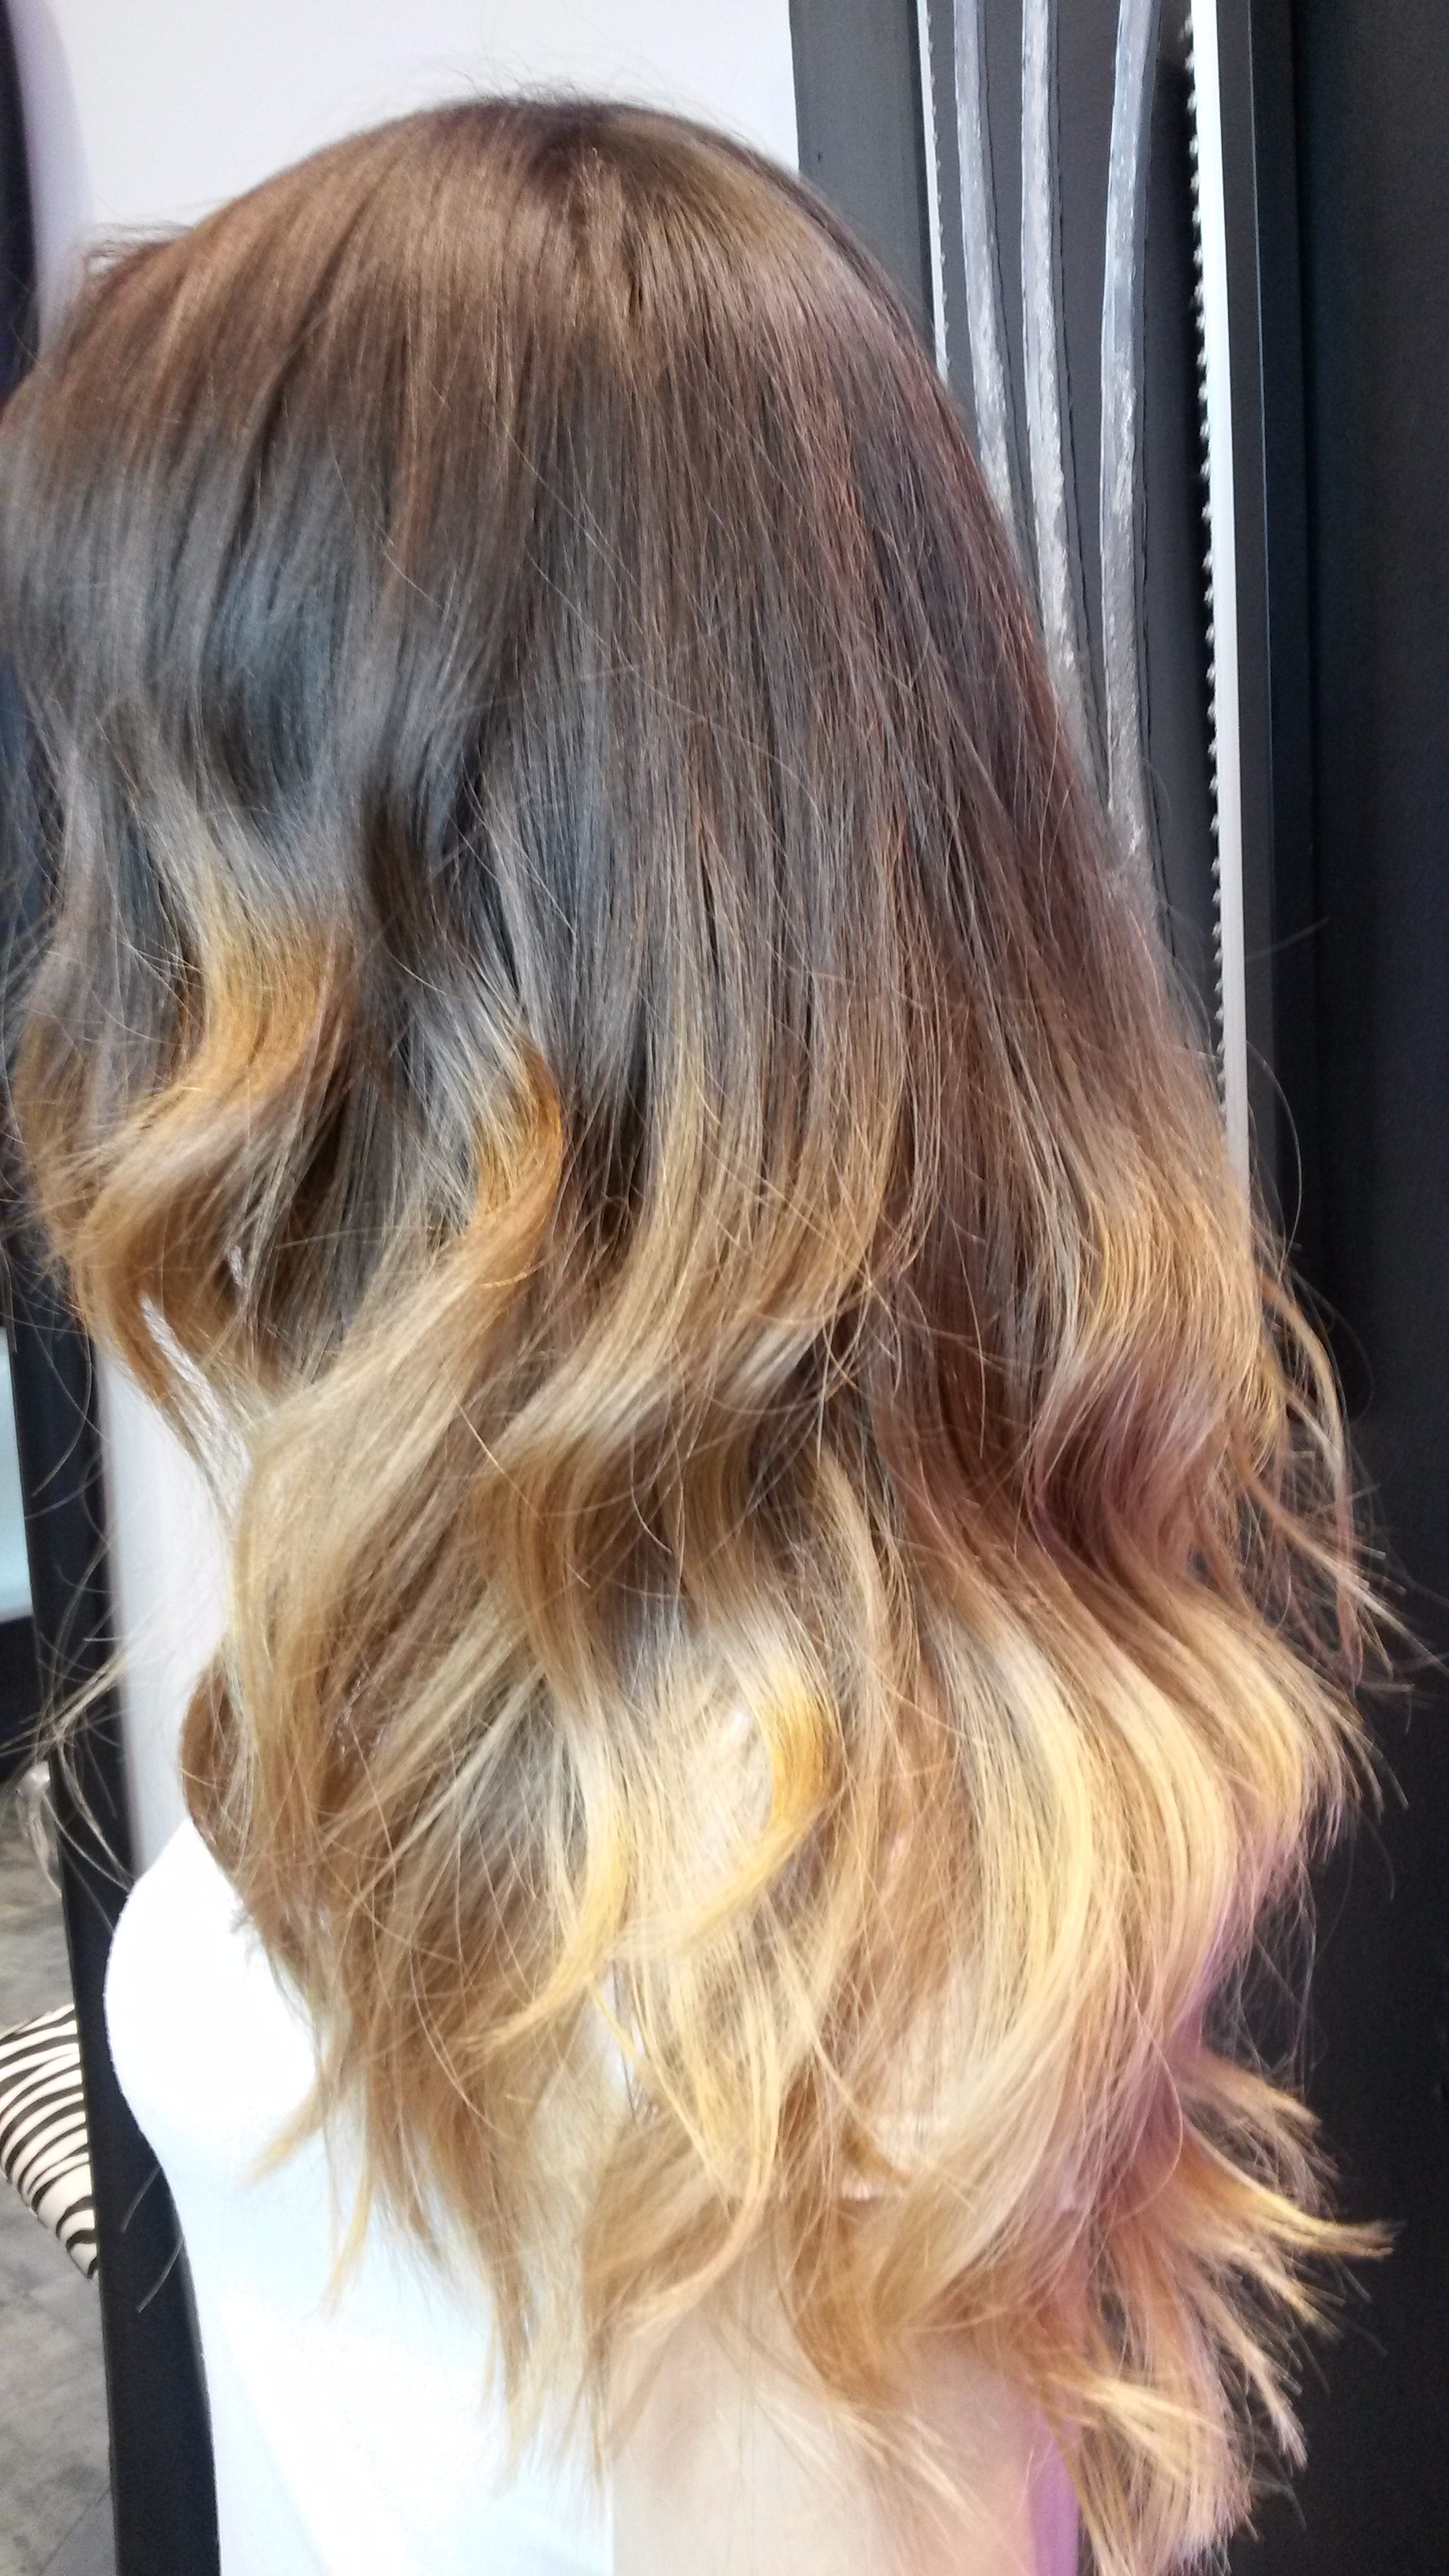 Souvent Ombré hair Salon de coiffure Paris coloration Ombré hair WC73